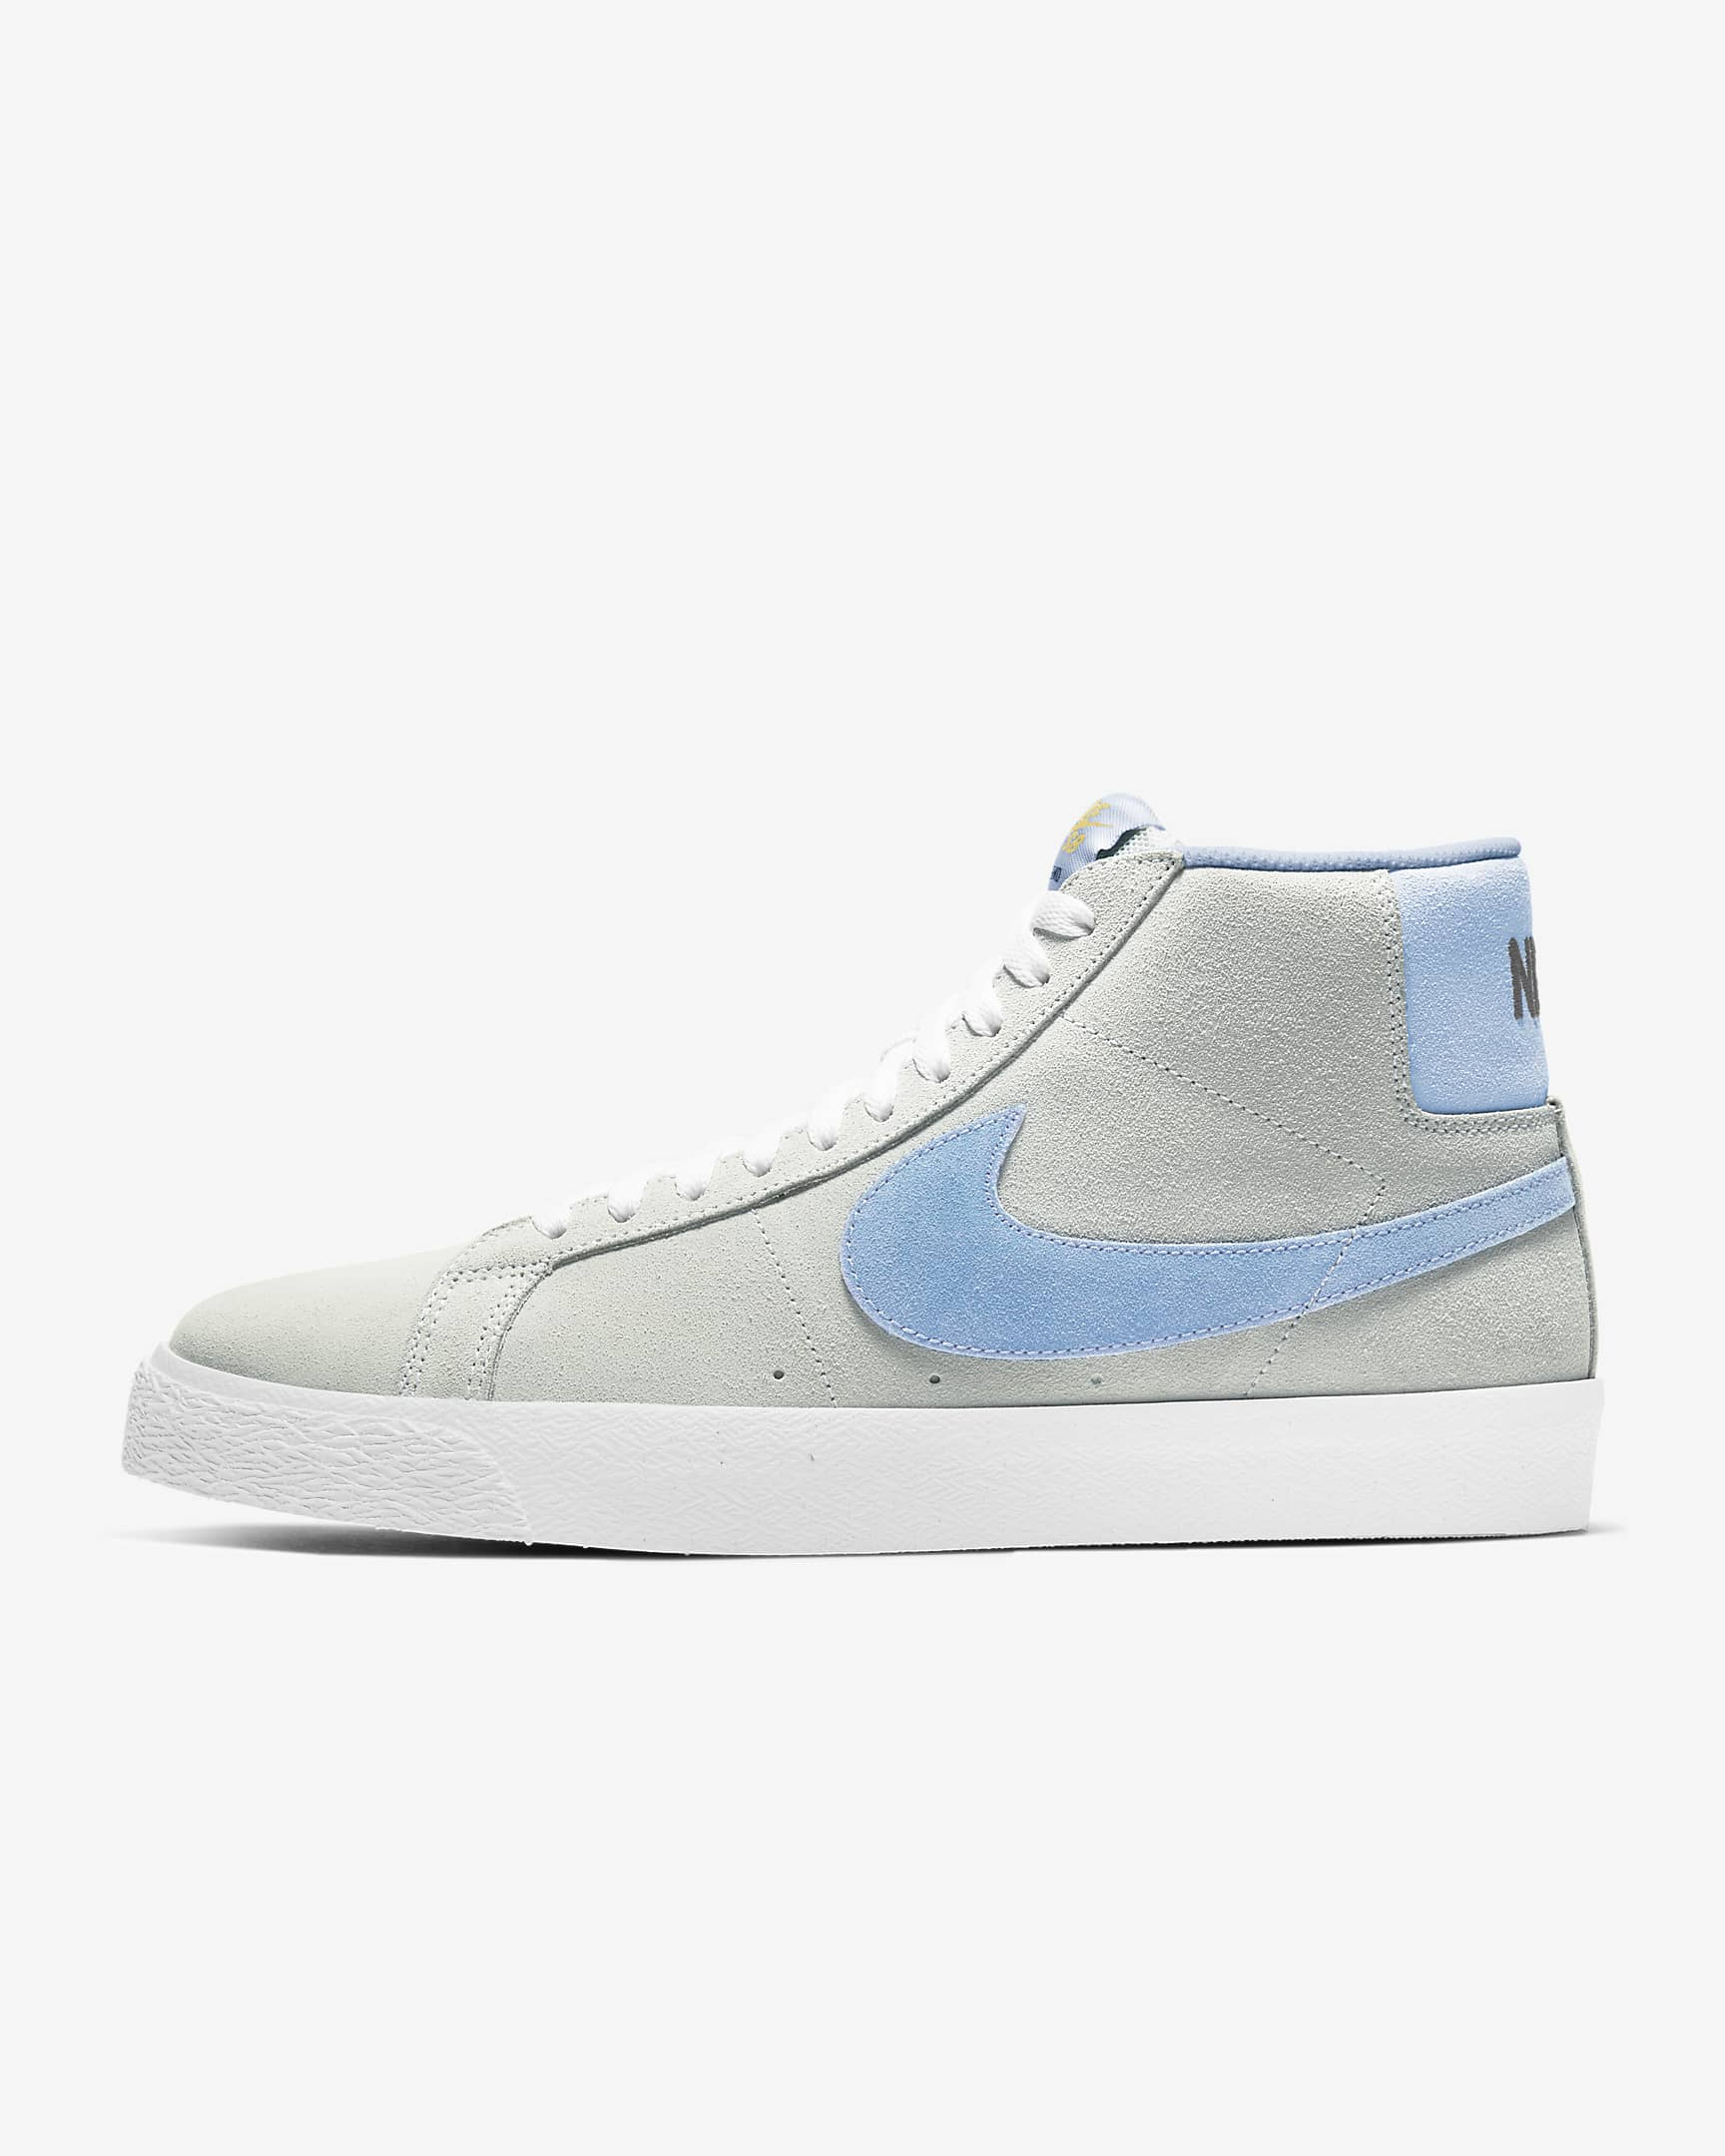 BLAZER MID PHOTON DUST / PSYCHIC BLUE